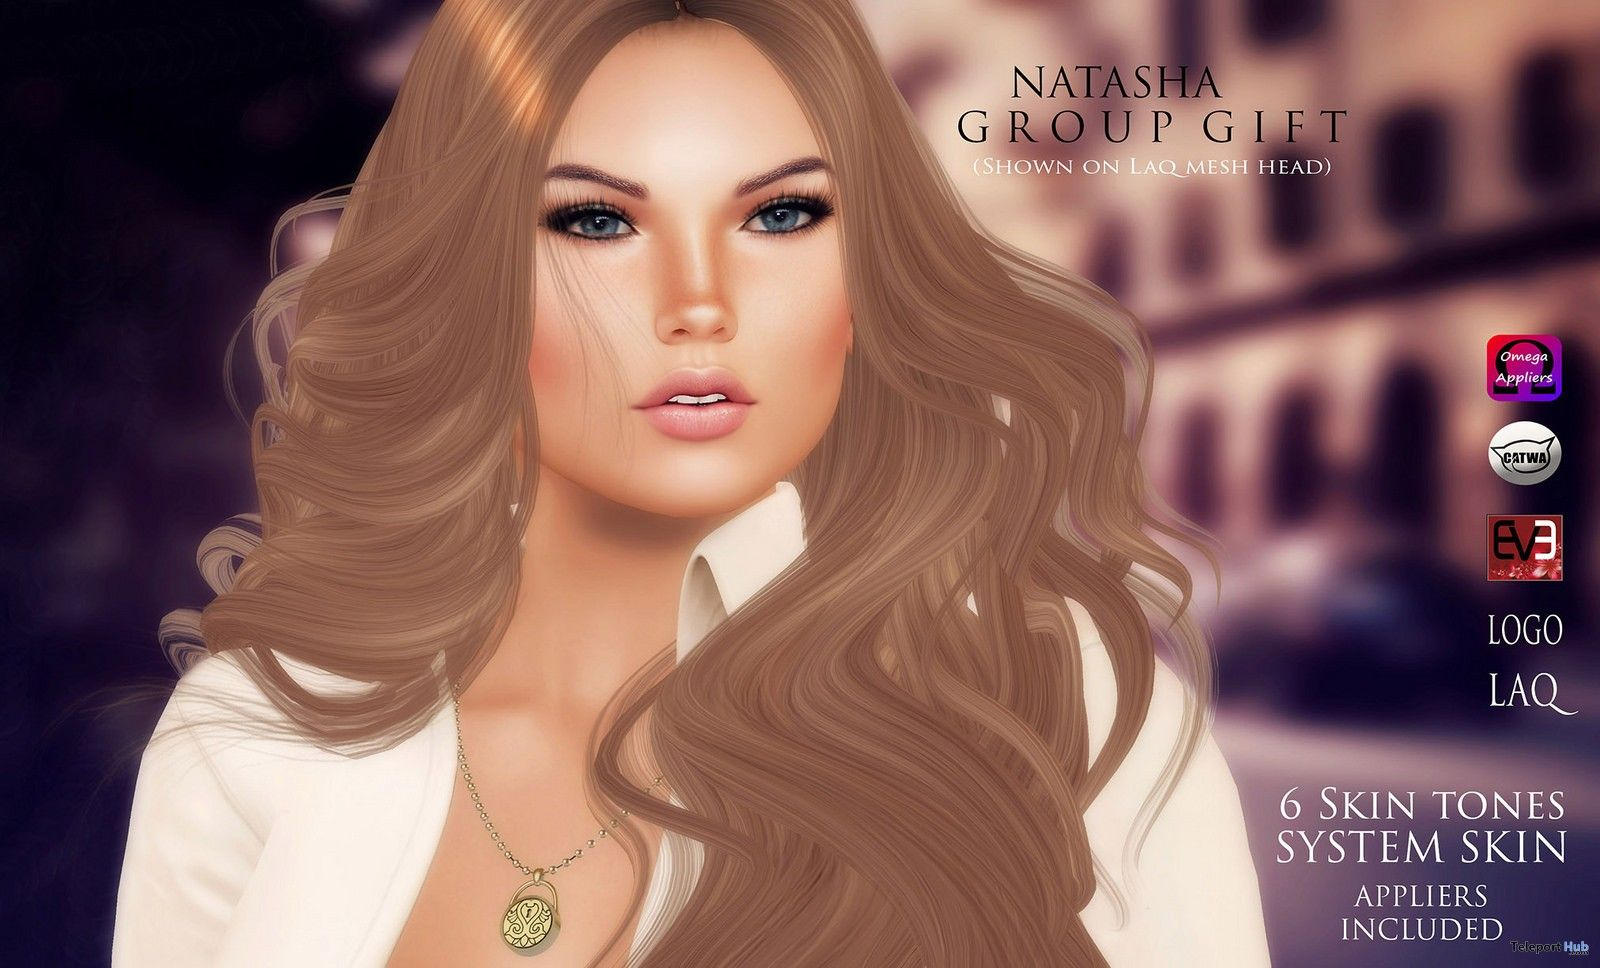 Natasha Skin 6 Tones With Appliers Group Gift by WOW Skins